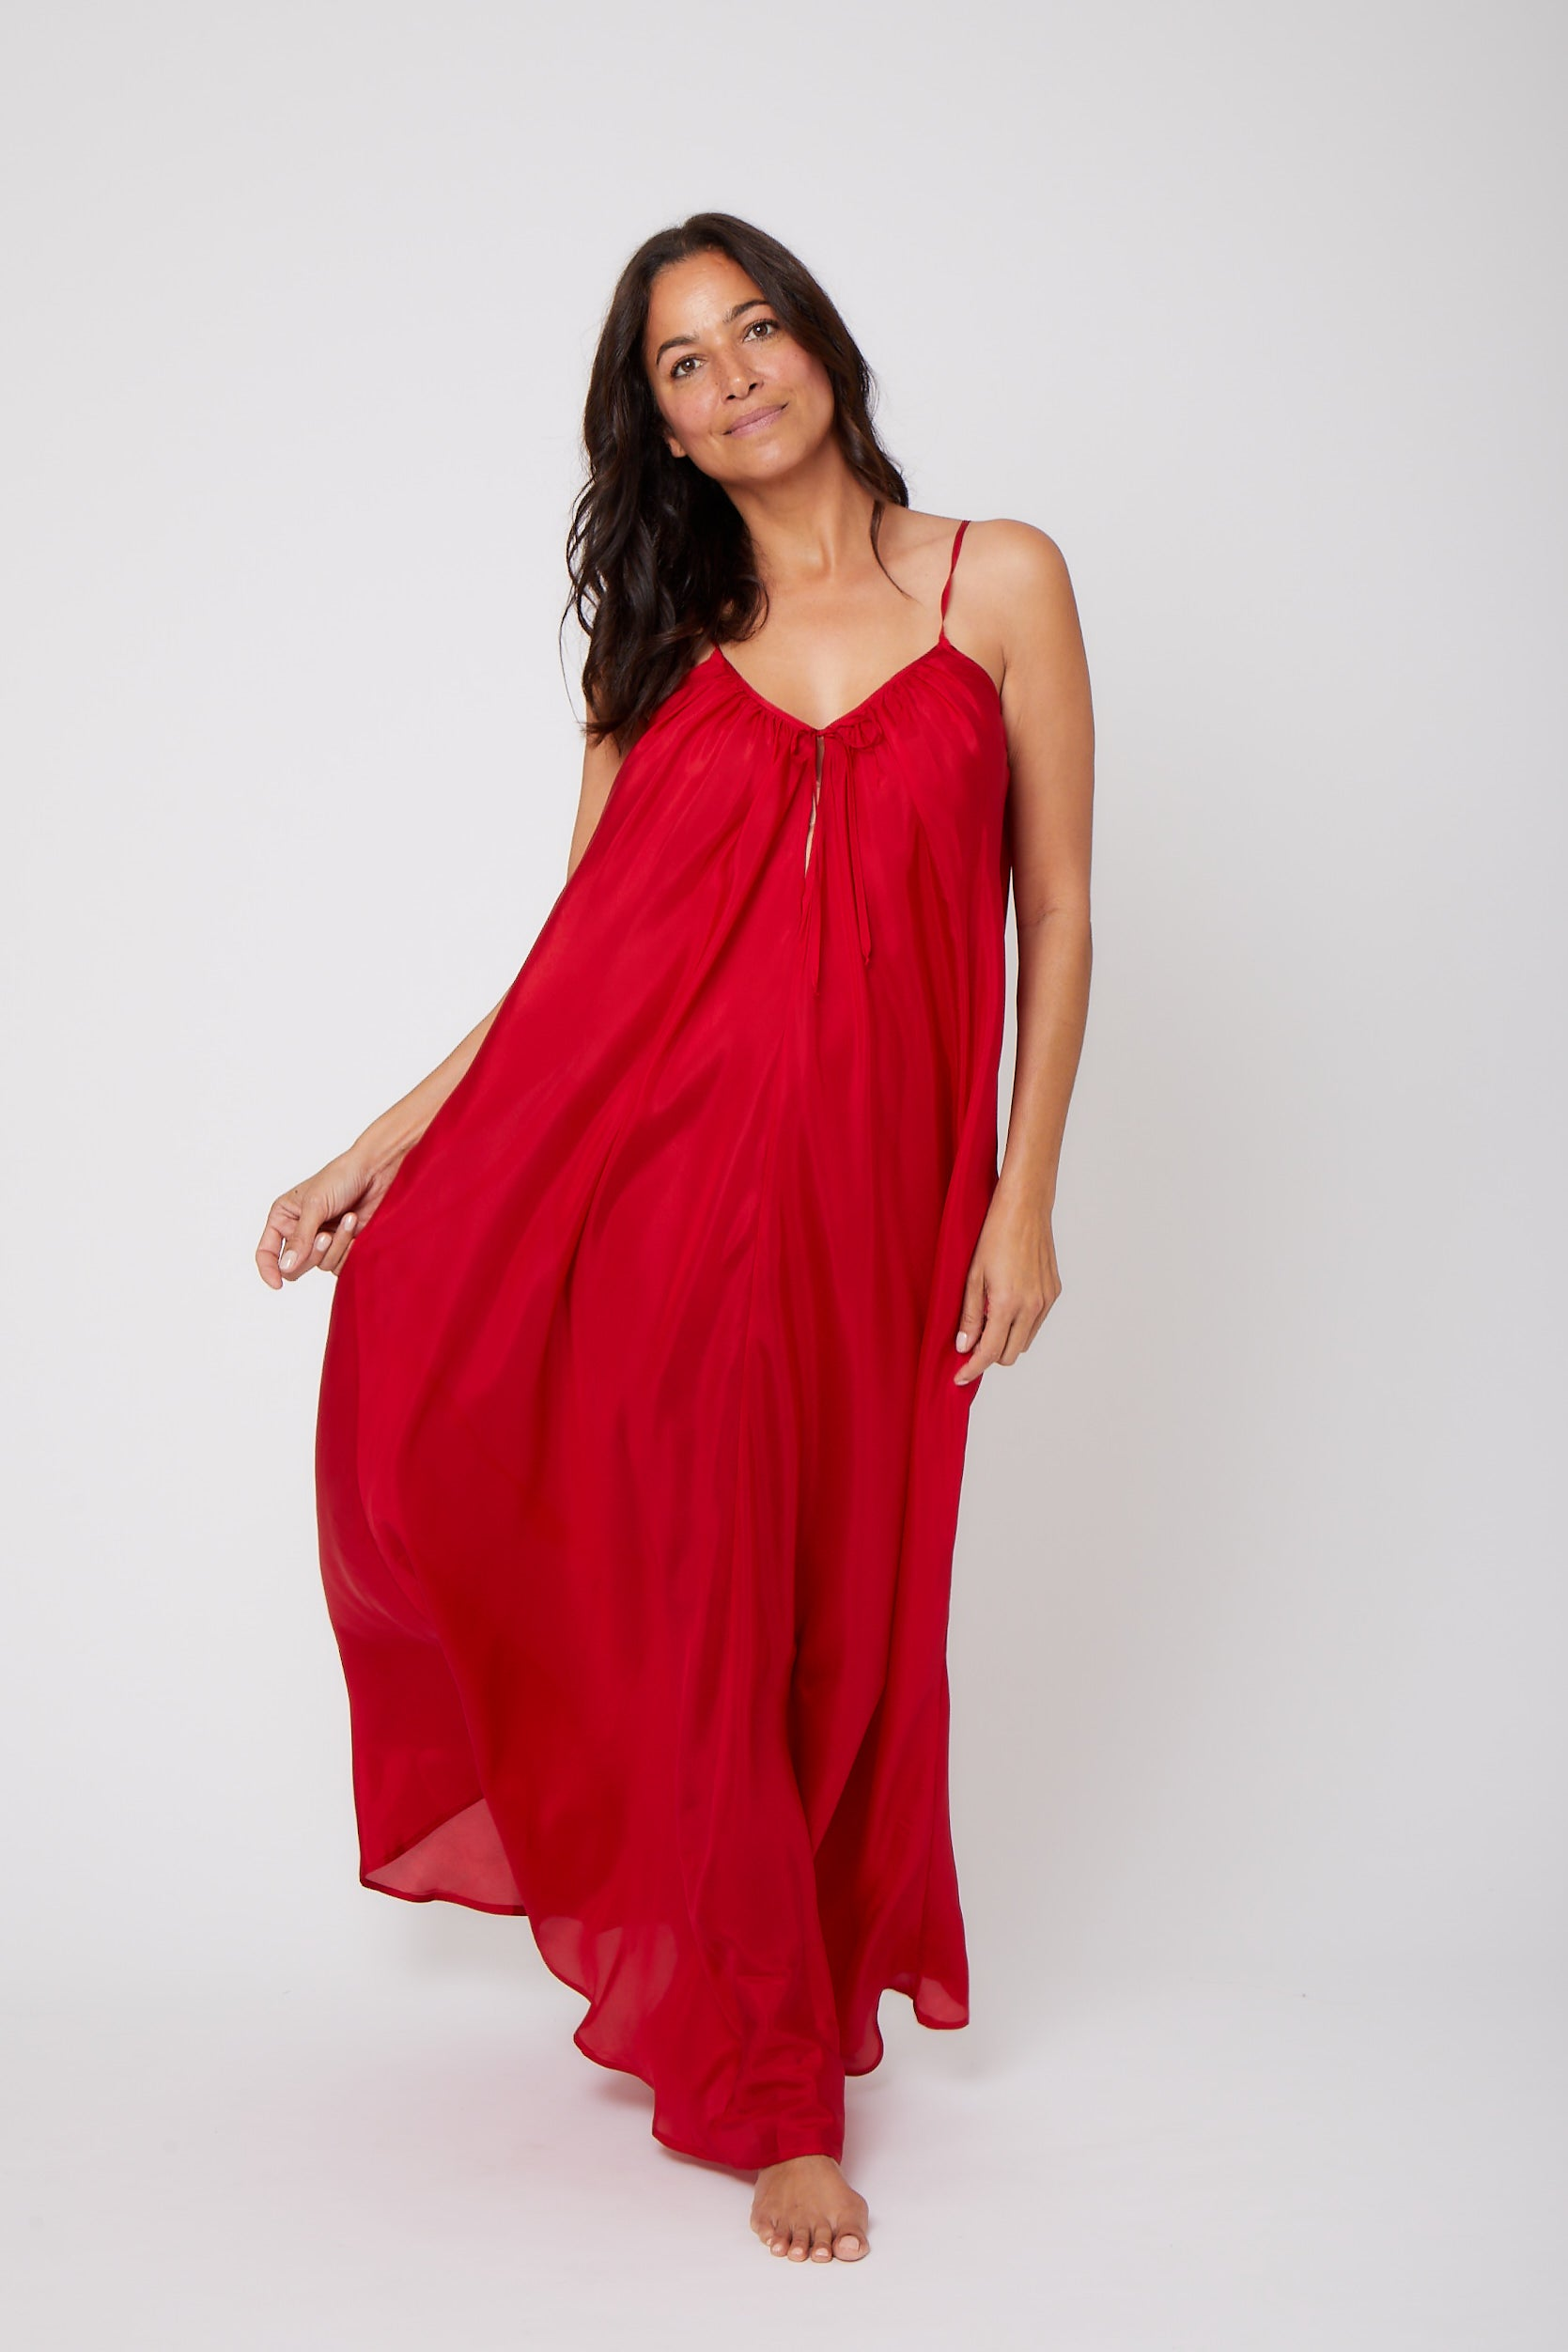 PLF_022620_40_RED_PARIS_DRESS_0968